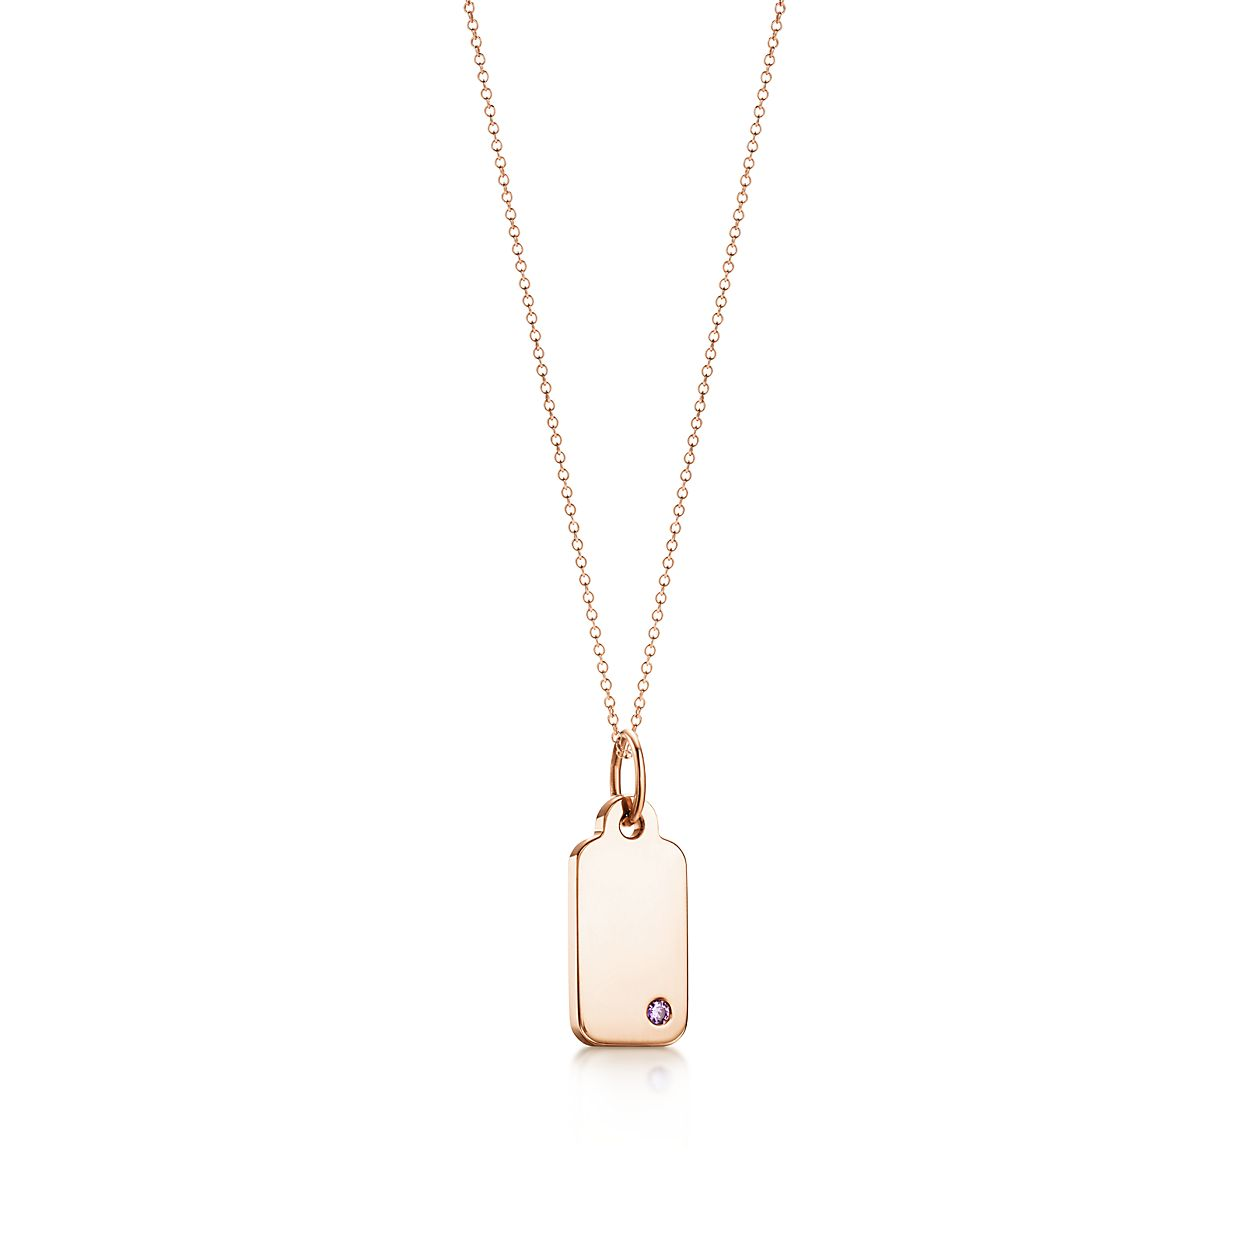 has long simple jewelry a bearfruit and necklace copy inspired design minimalist style our industrial rectangle